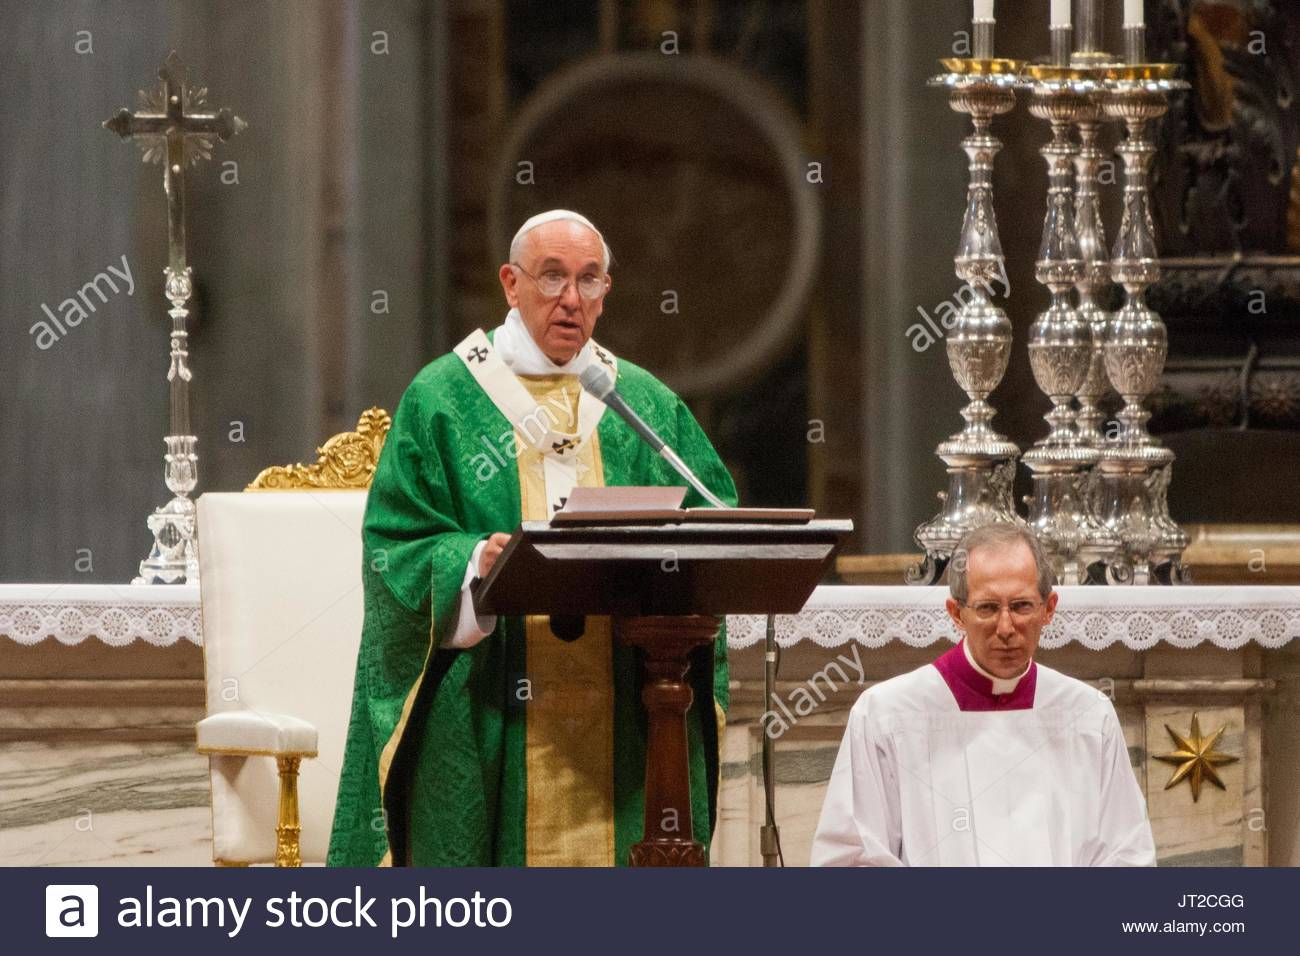 93514761cdfd Pope Francis. Pope Francis during the Holy Mass for the opening of the XIV  General Assembly of the Synod of Bishops in St. Peter s Basilica on October  04